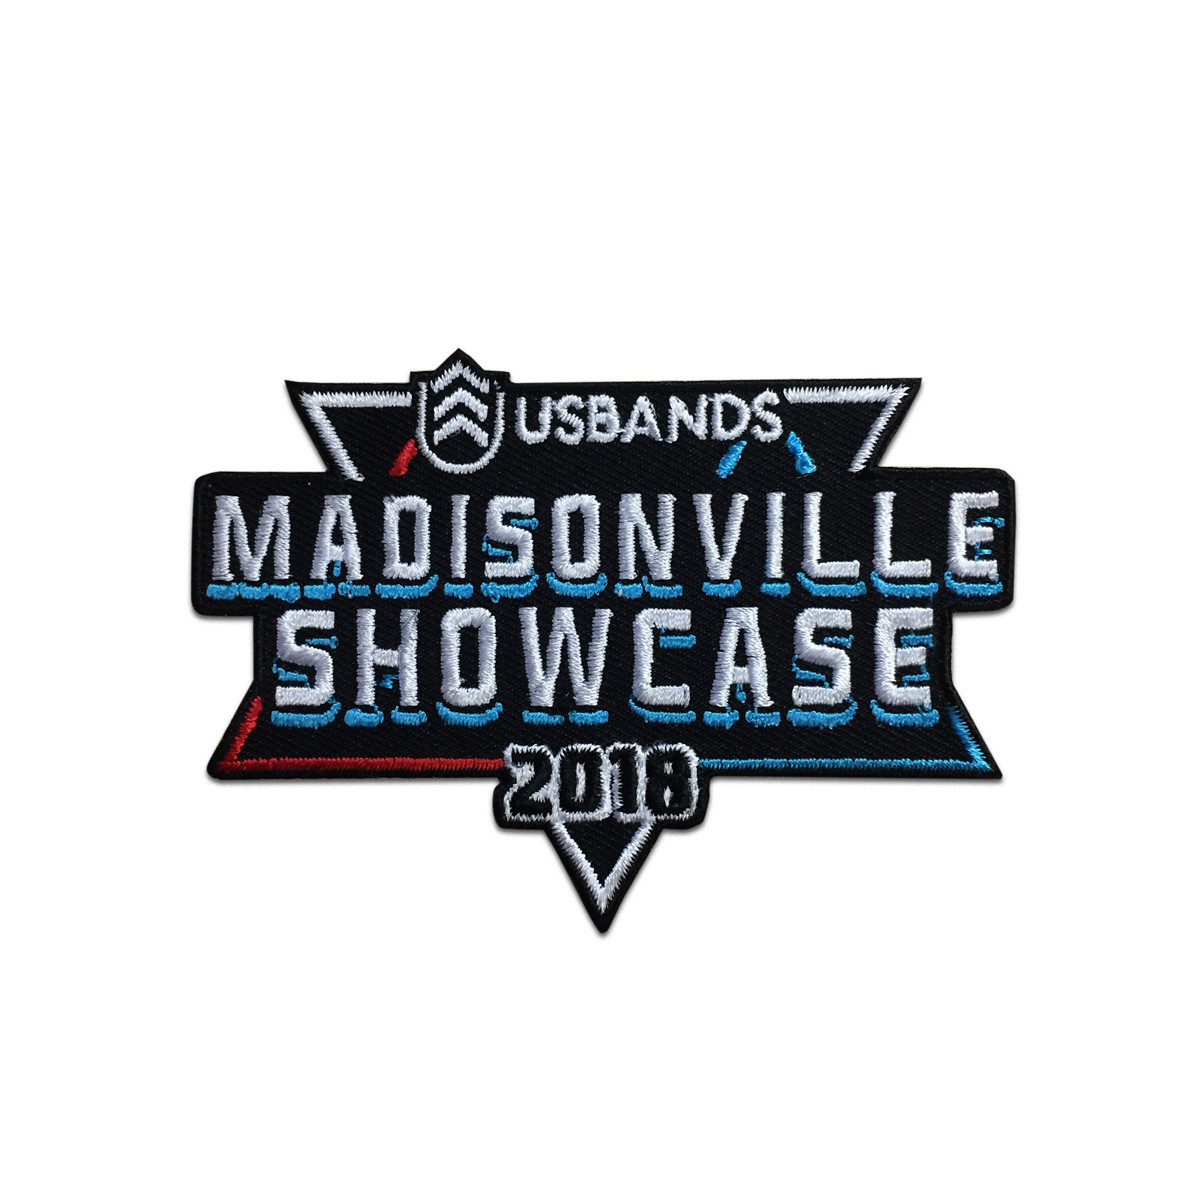 2018 USBands Madisonville Showcase Event Patch